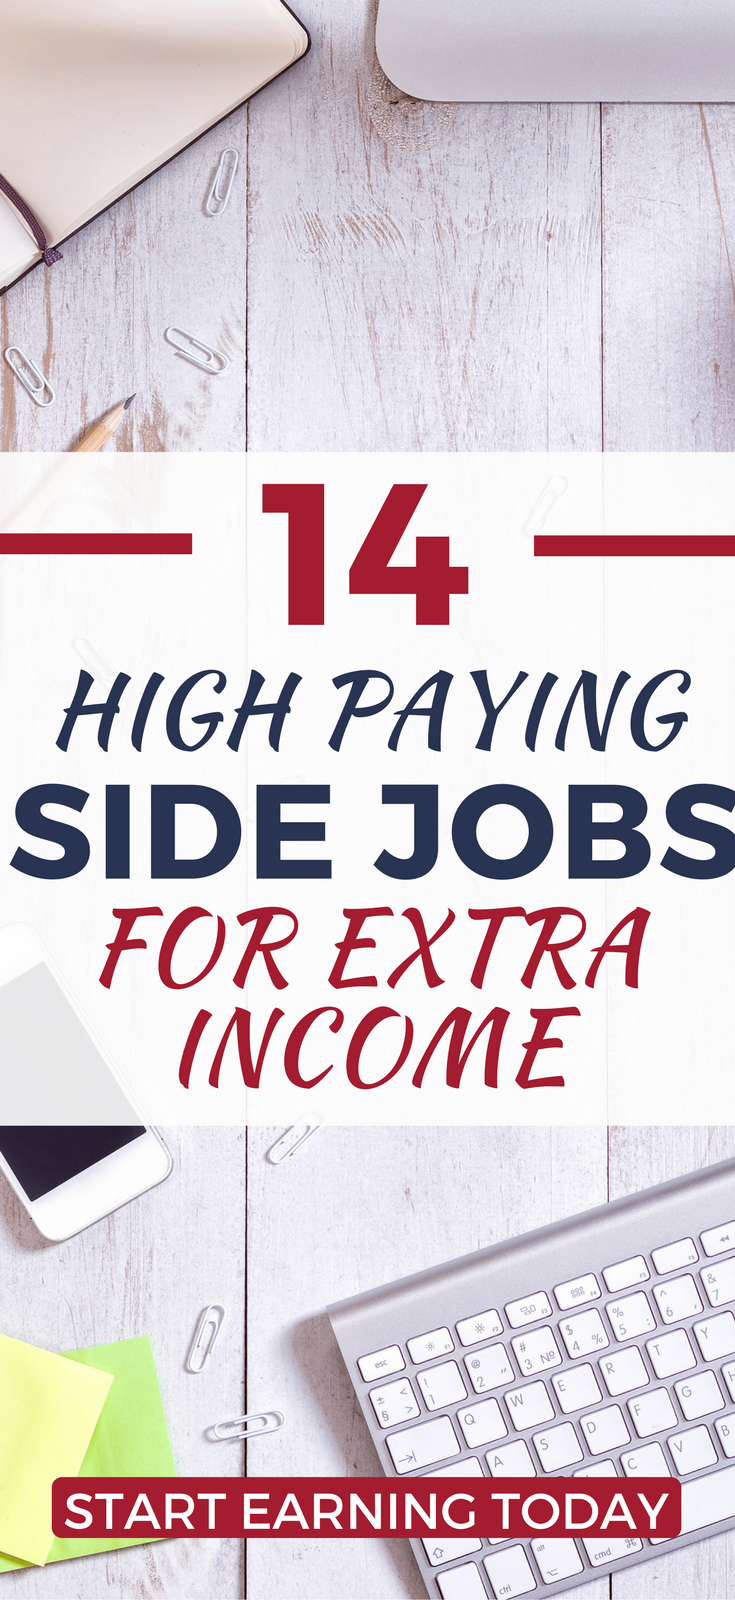 20 High-Paying Part-Time Weekend Jobs For Extra Income | Money fast ...